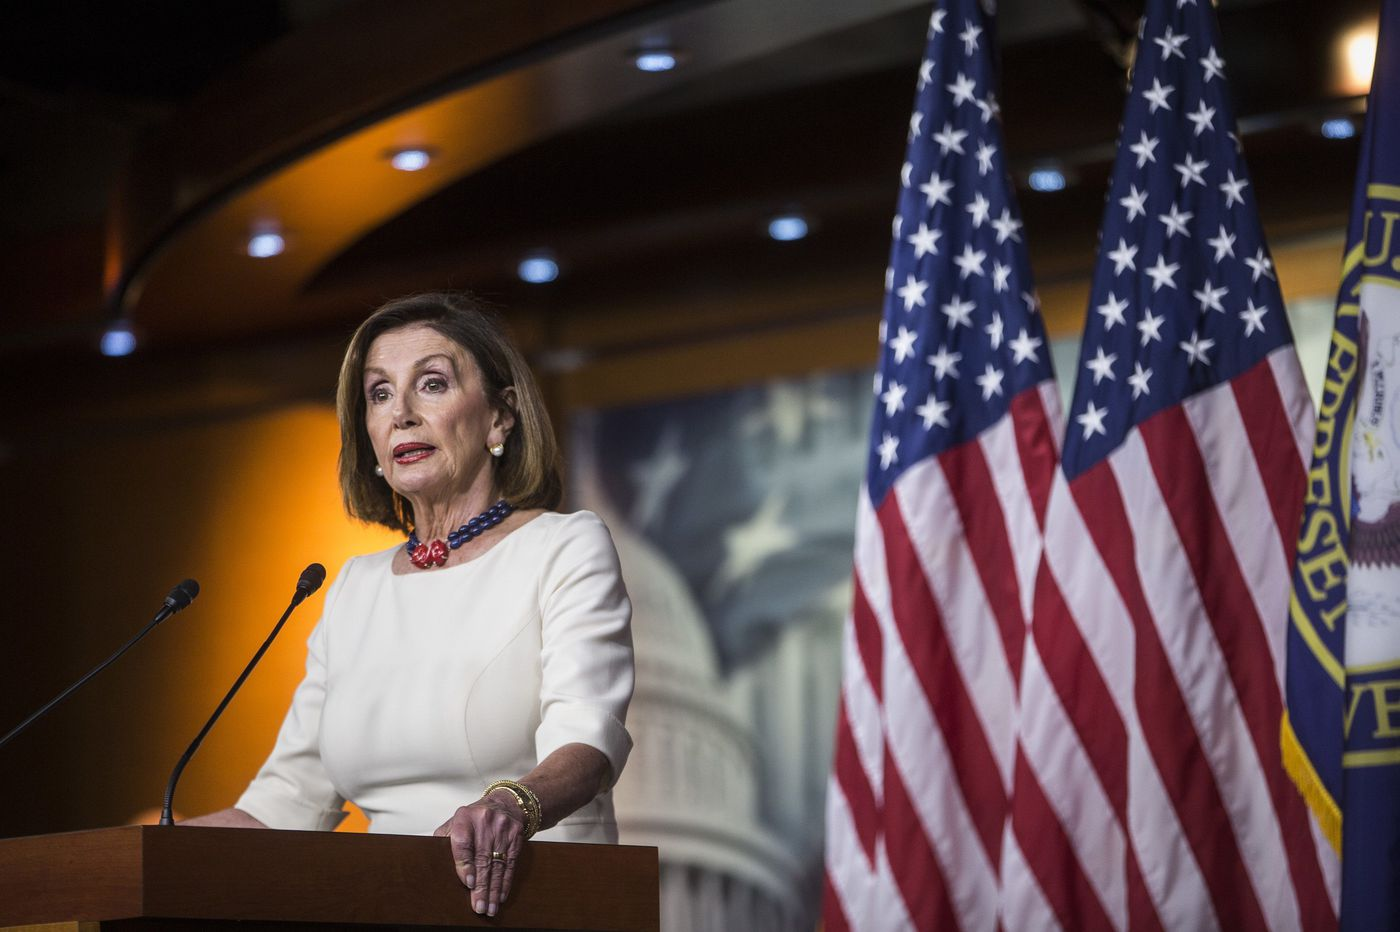 The rough transcript makes it clear that Democrats got ahead of the evidence | Marc Thiessen